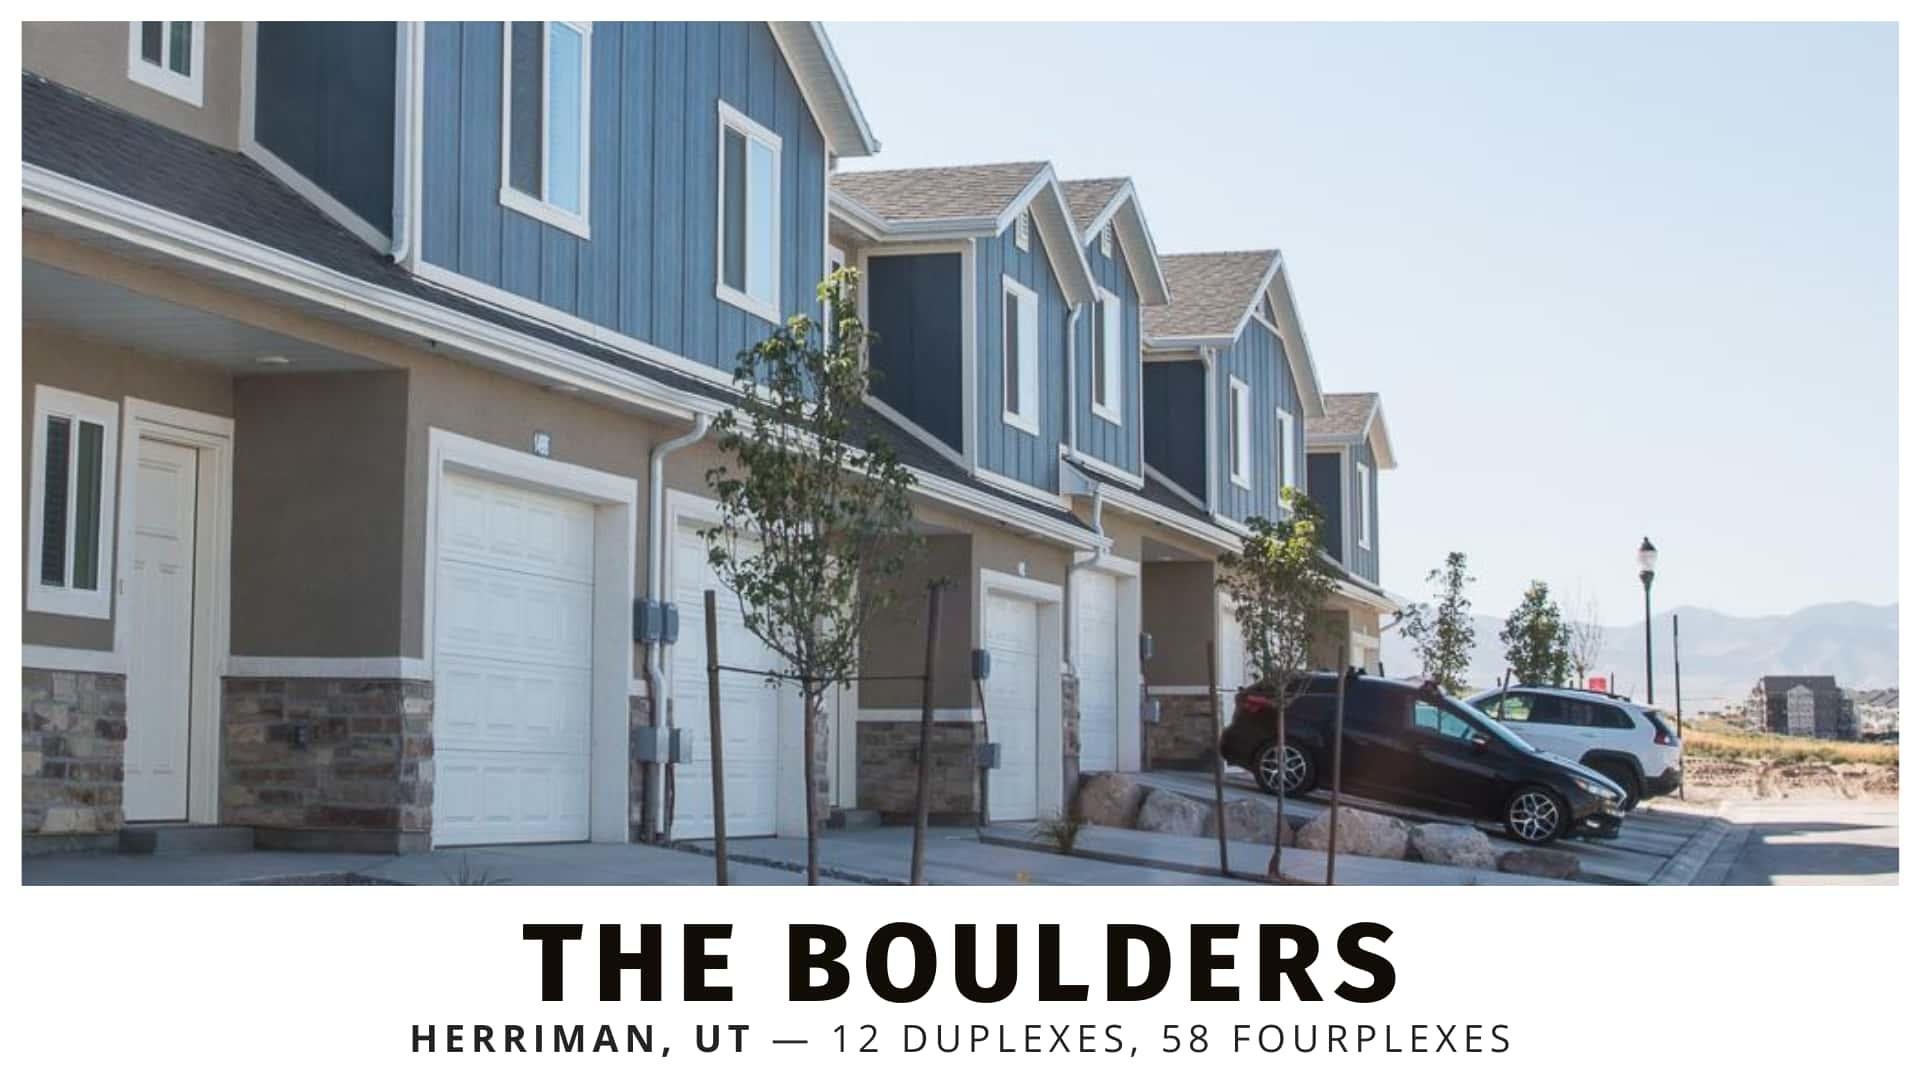 The Boulders duplexes and fourplexes for sale in Herriman, Utah